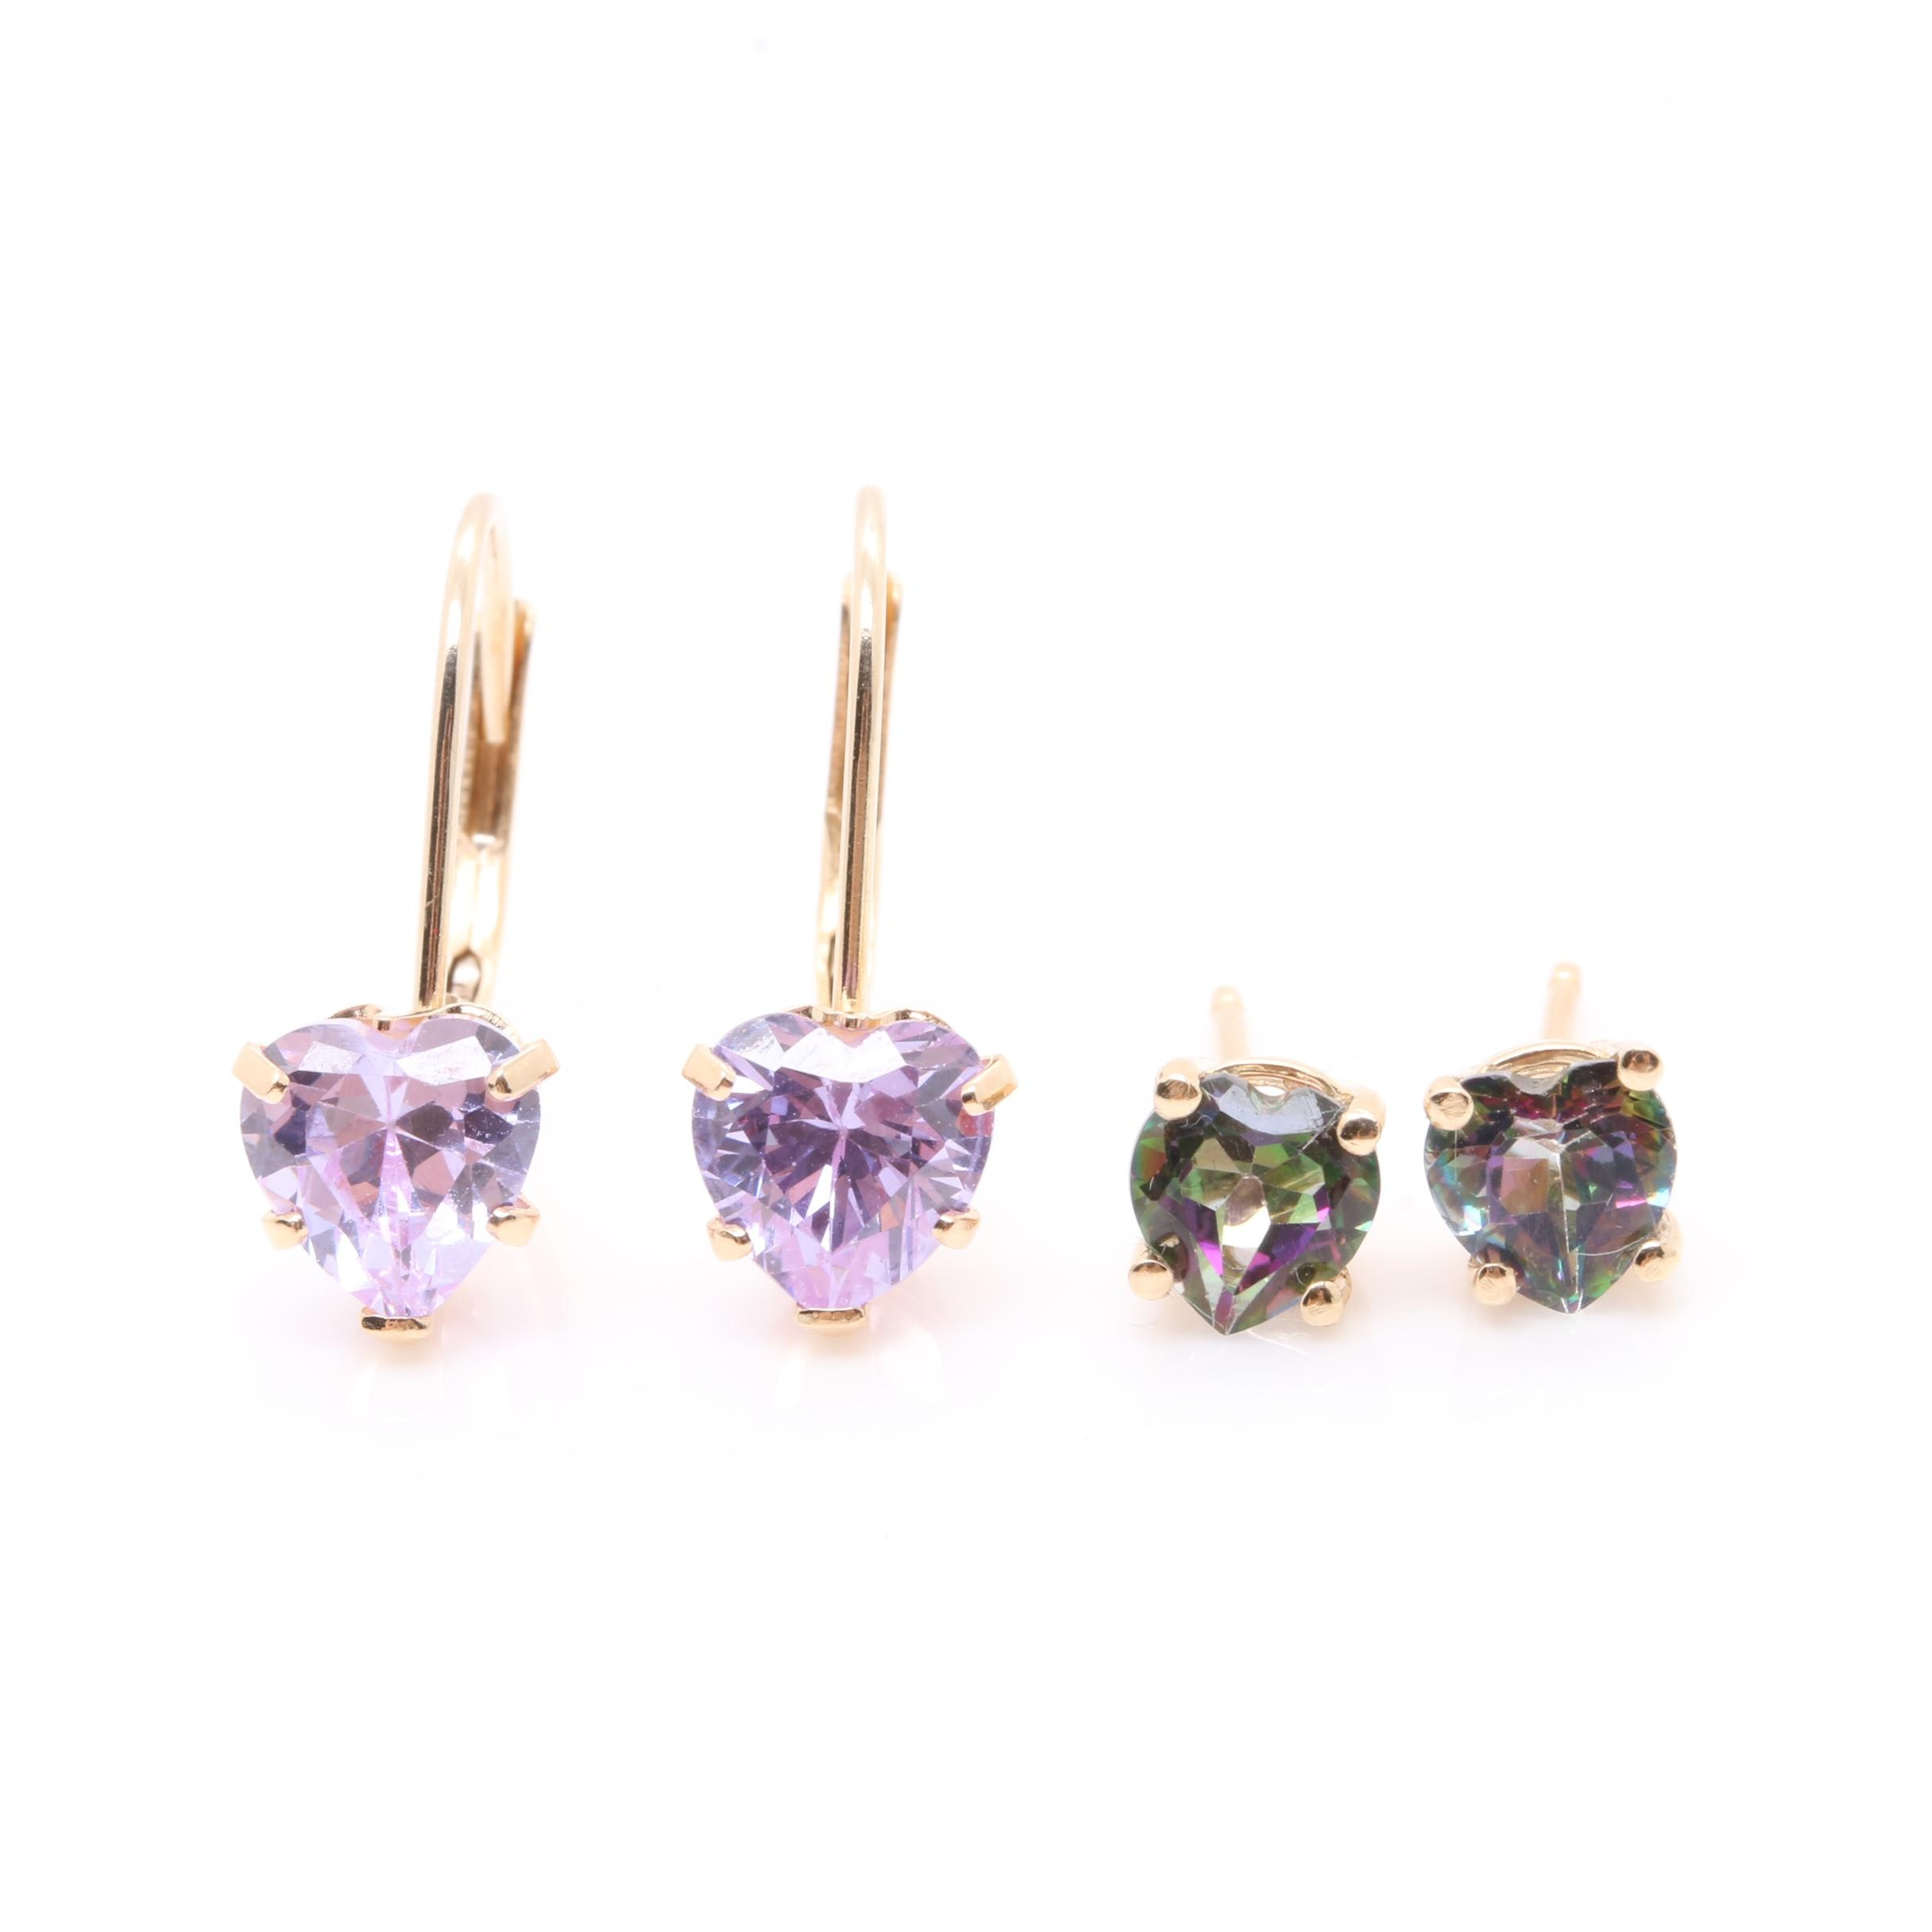 14K Yellow Gold Cubic Zirconia and Topaz Earrings